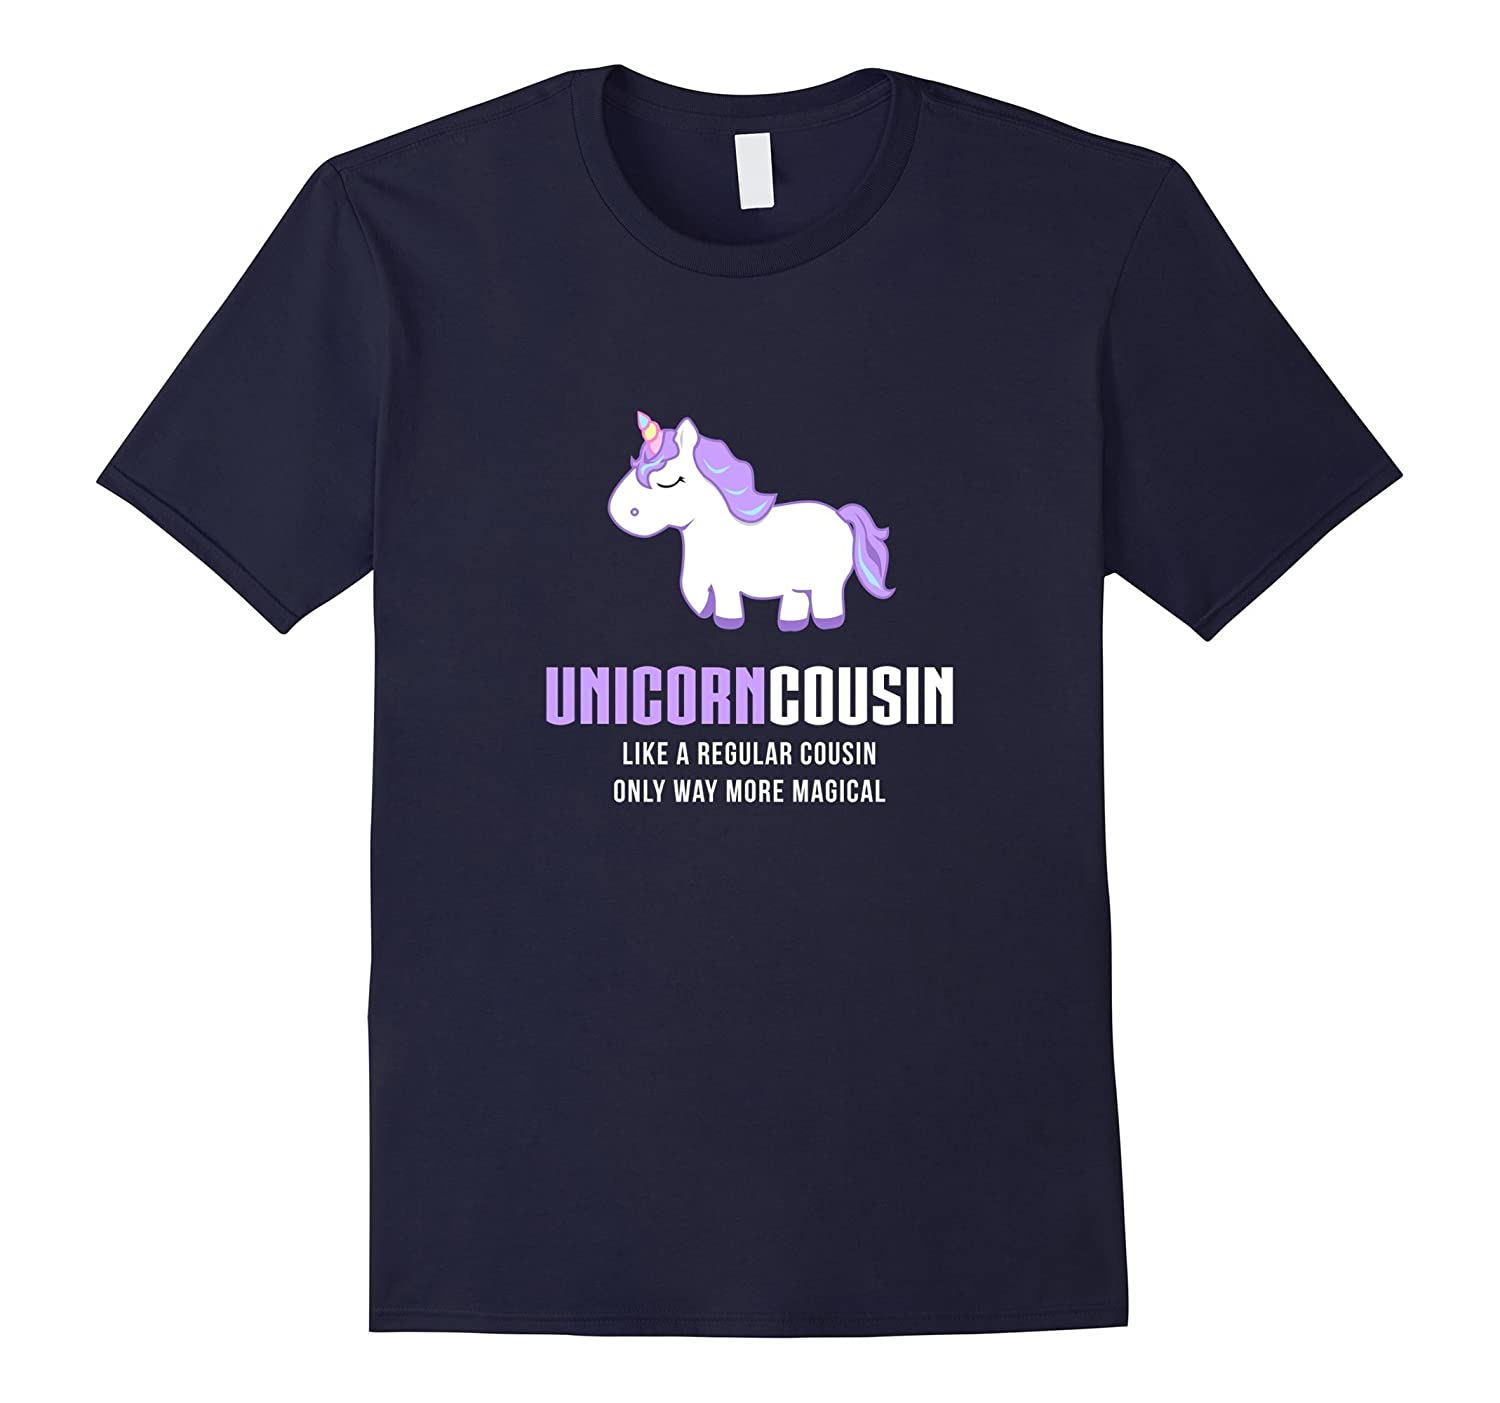 6f97ac6e6e22b8 Unicorn Cousin Shirt, Funny Cute Magical Gift-ANZ – Anztshirt